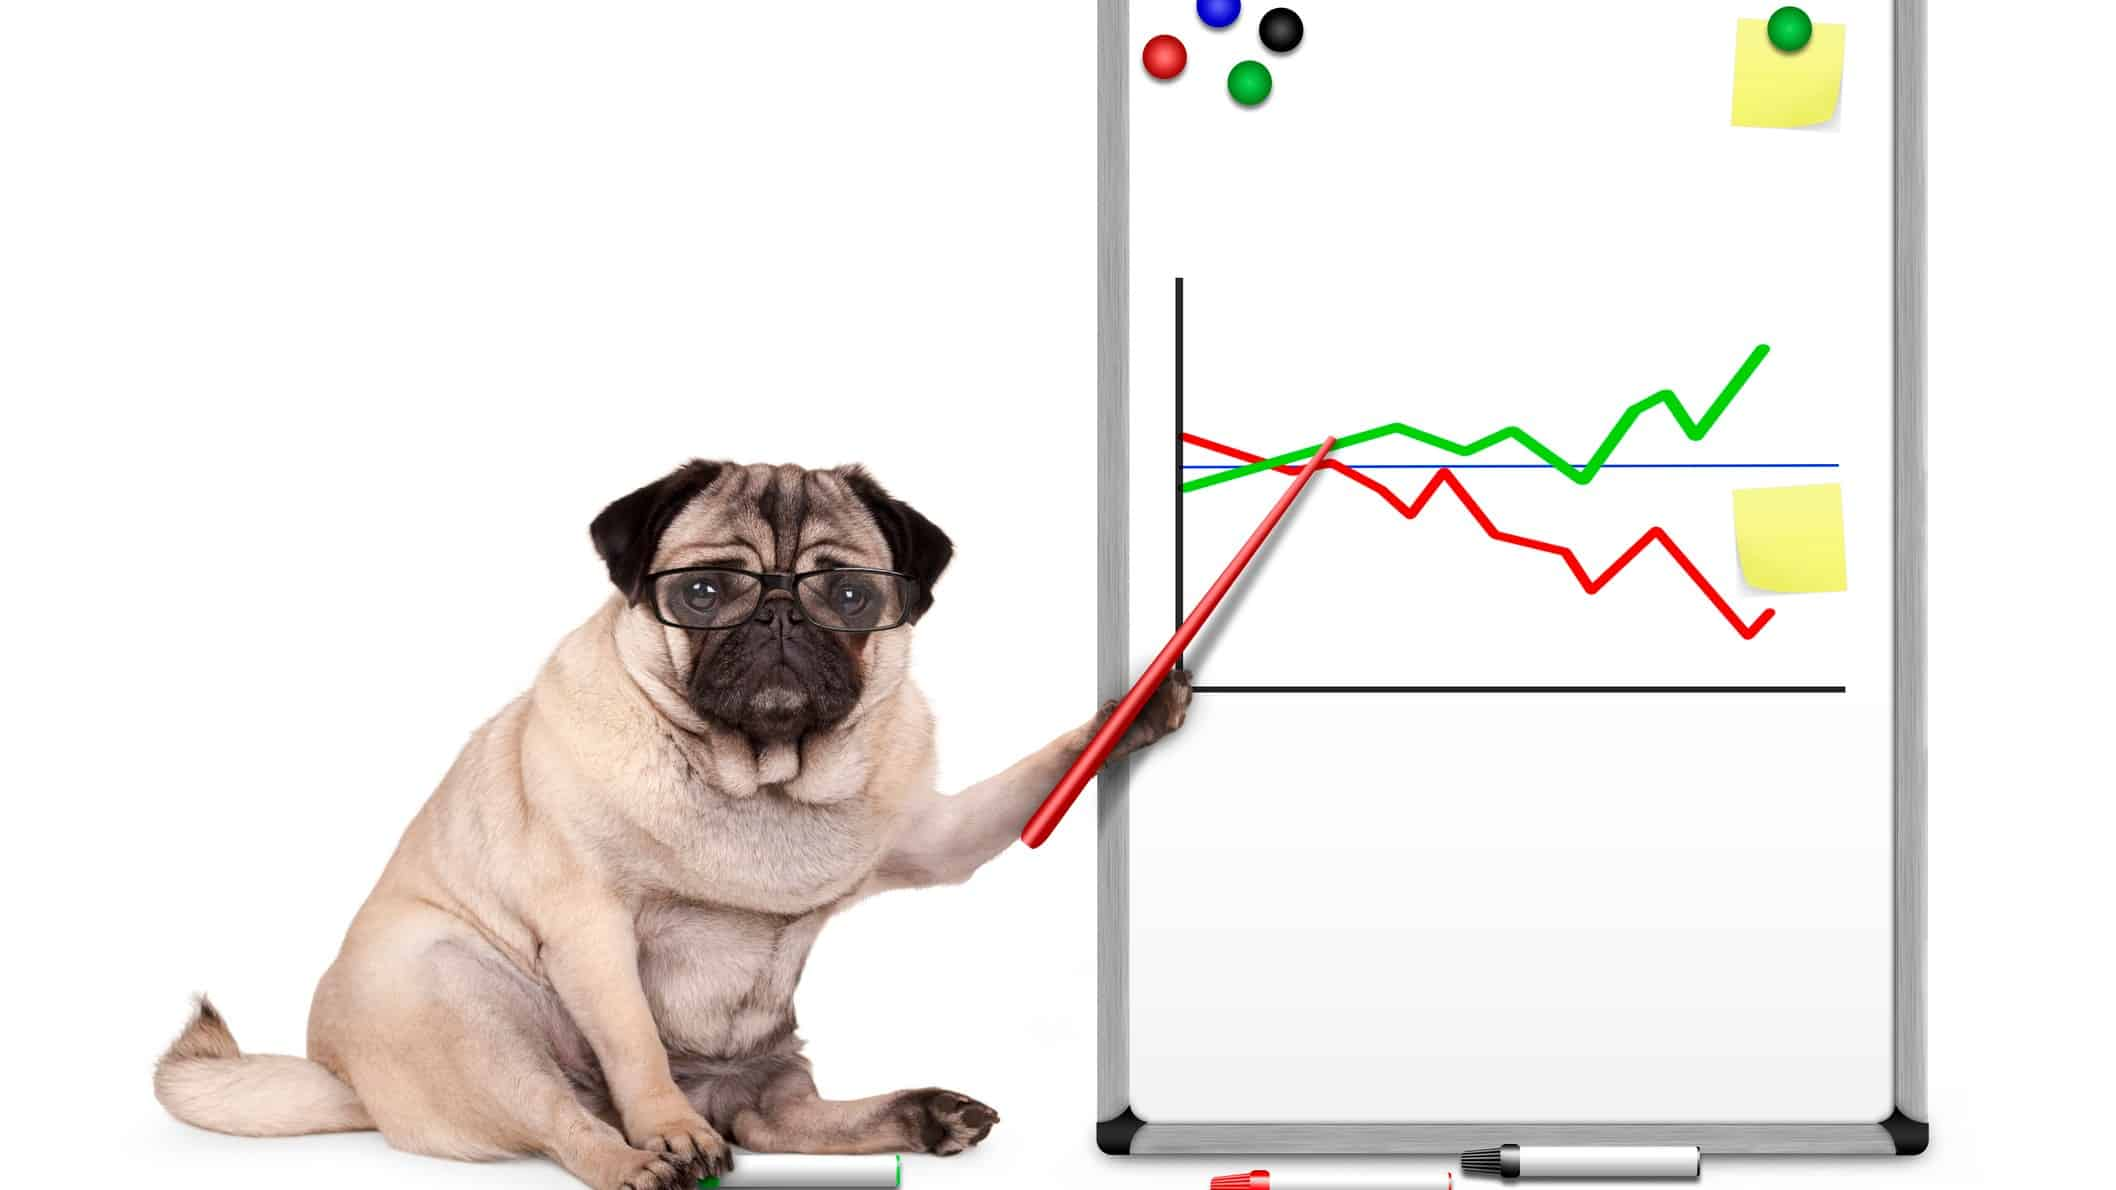 asx 200 share price represented by dog pointing to share price chart